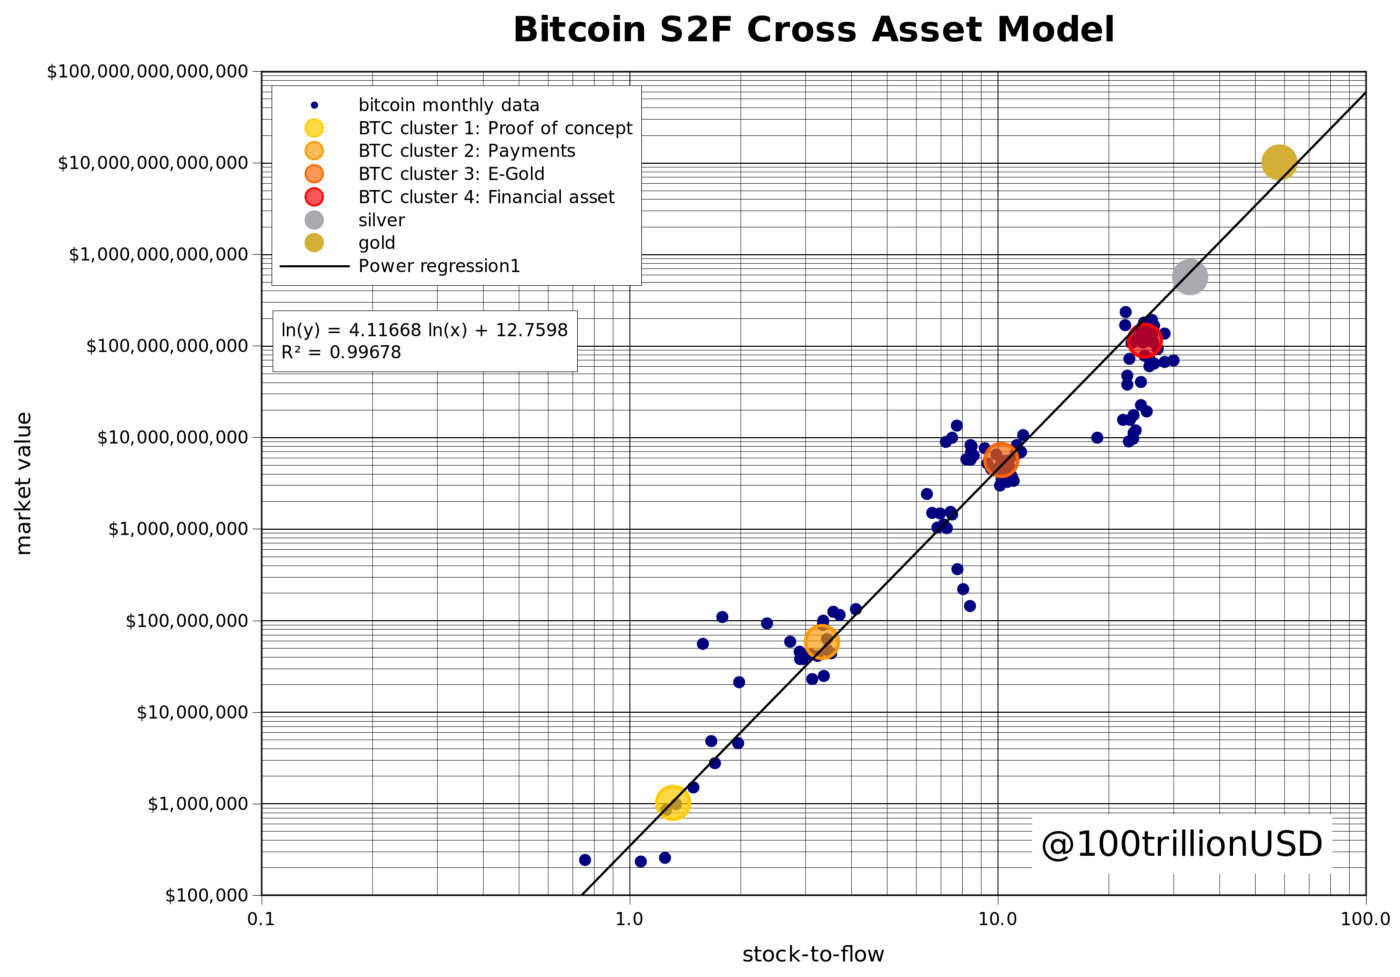 planB stock-to-flow cross asset model